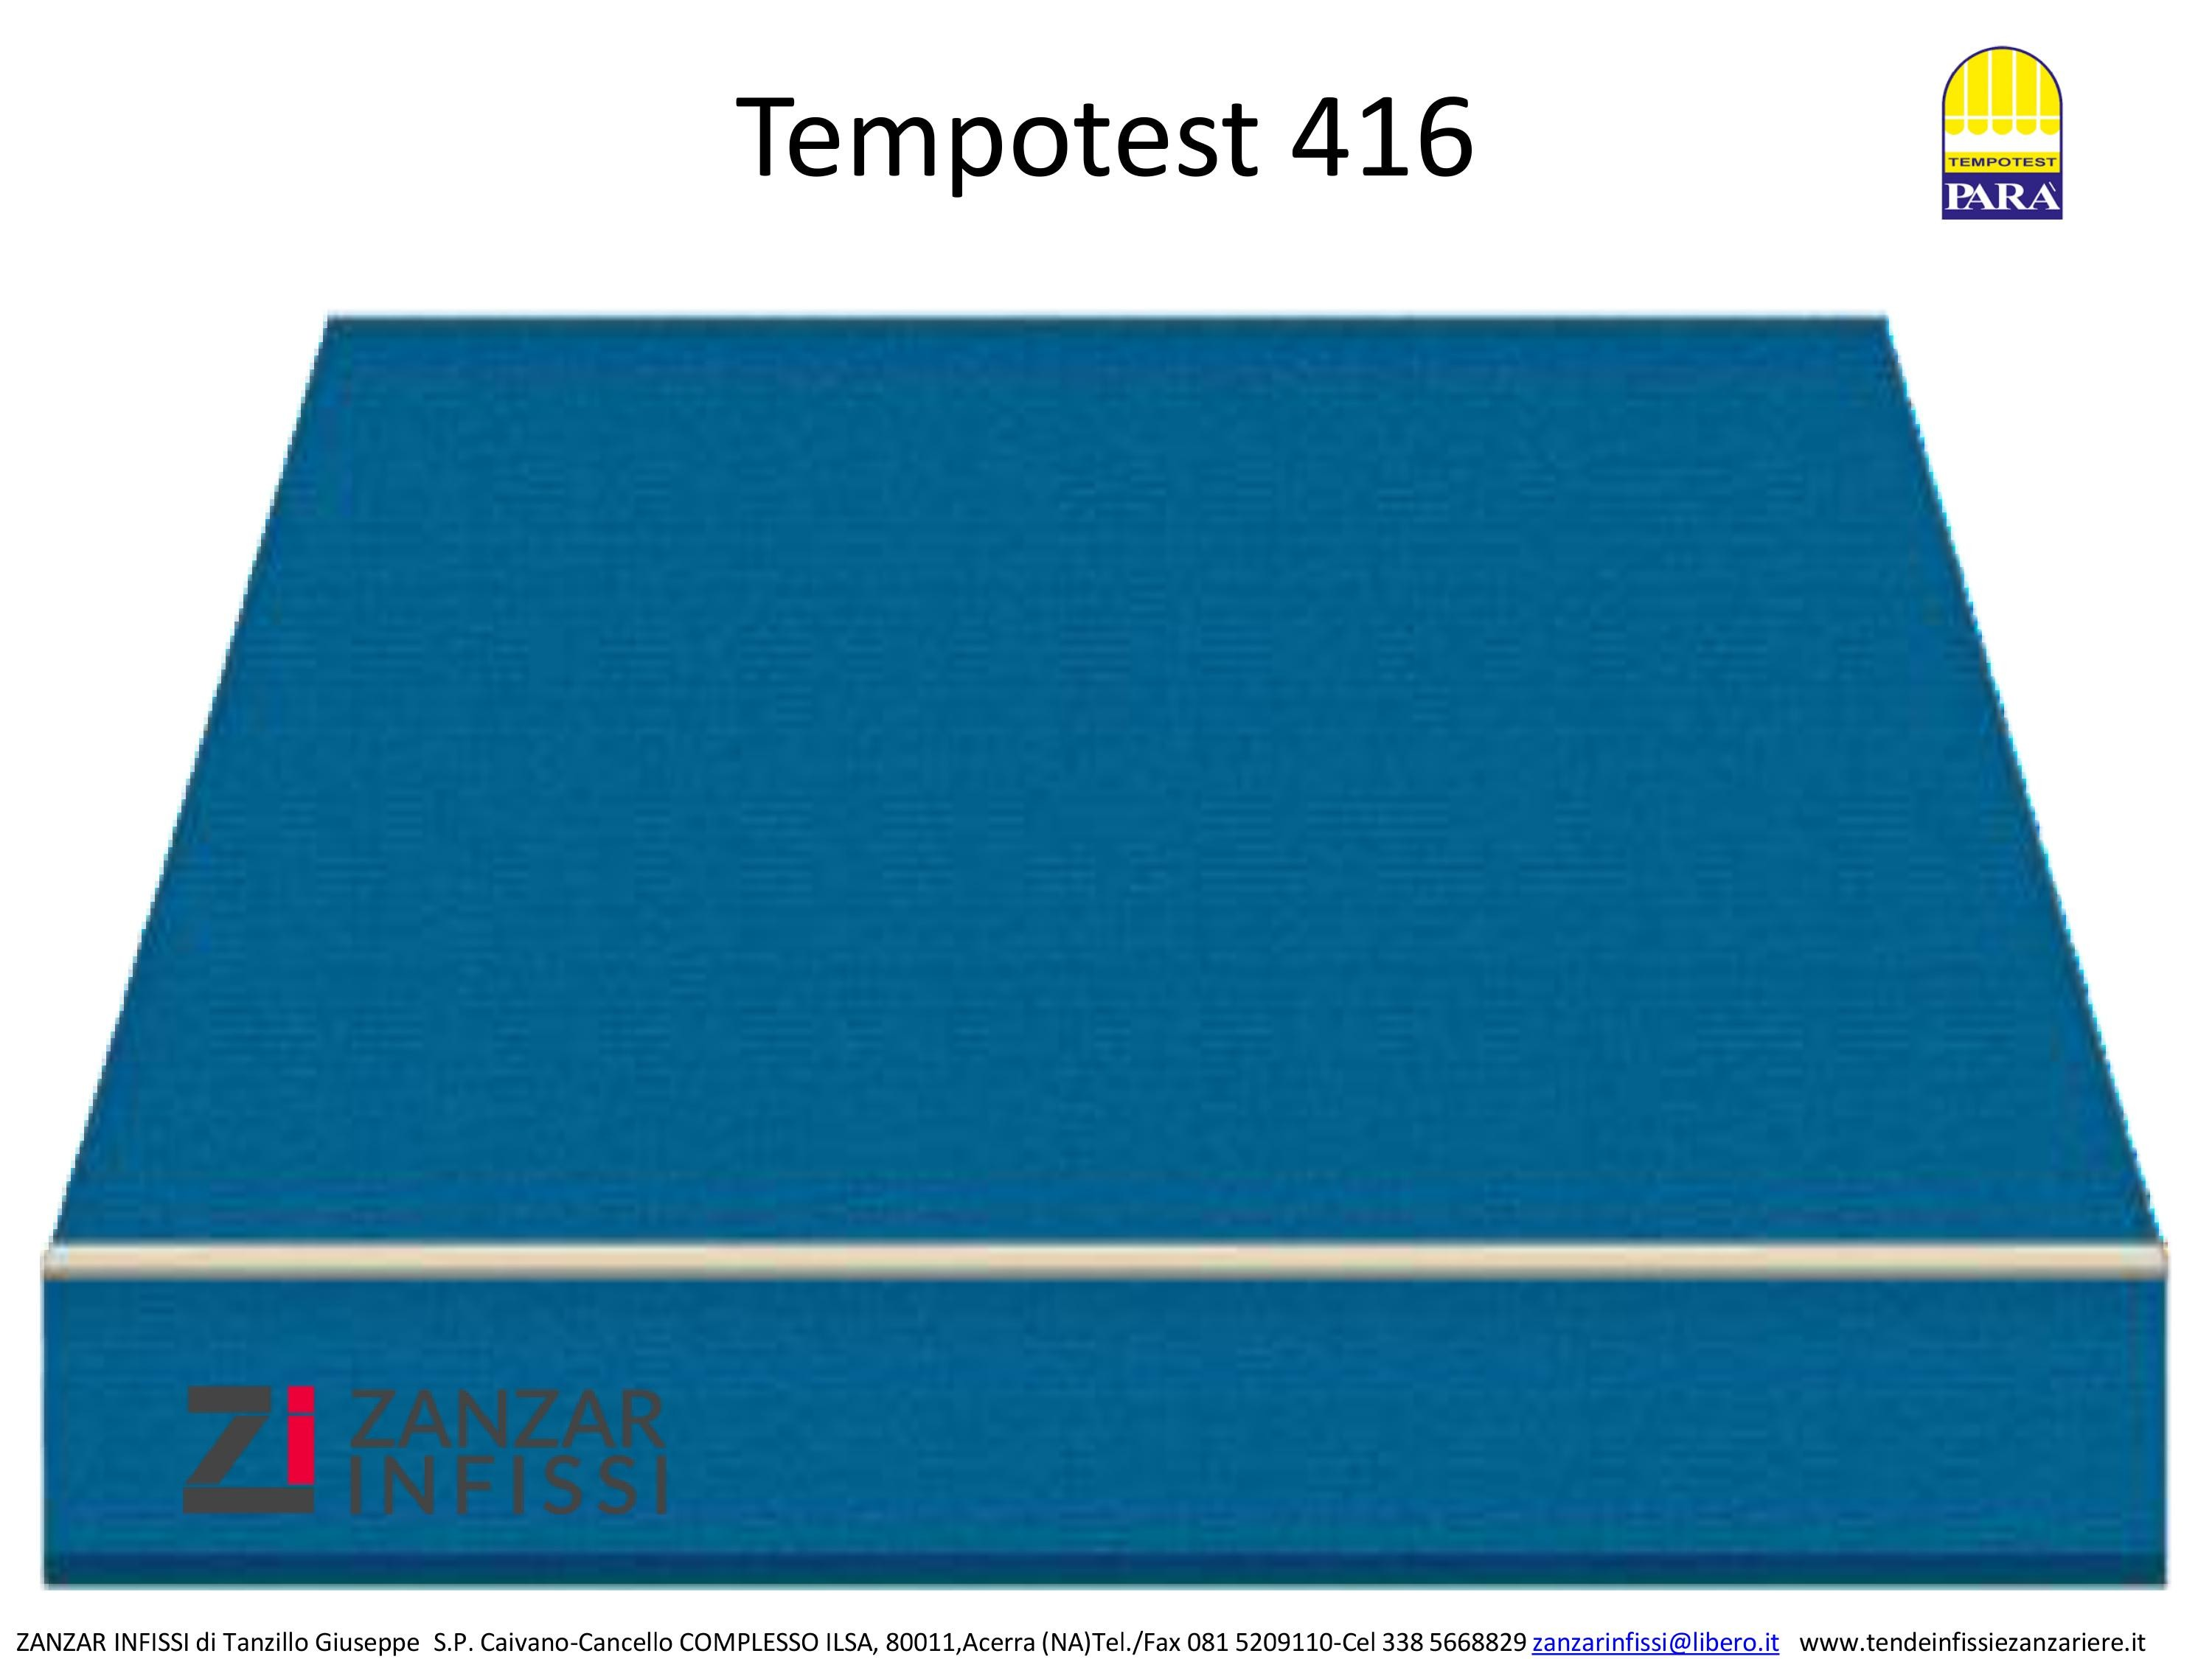 Tempotest 416